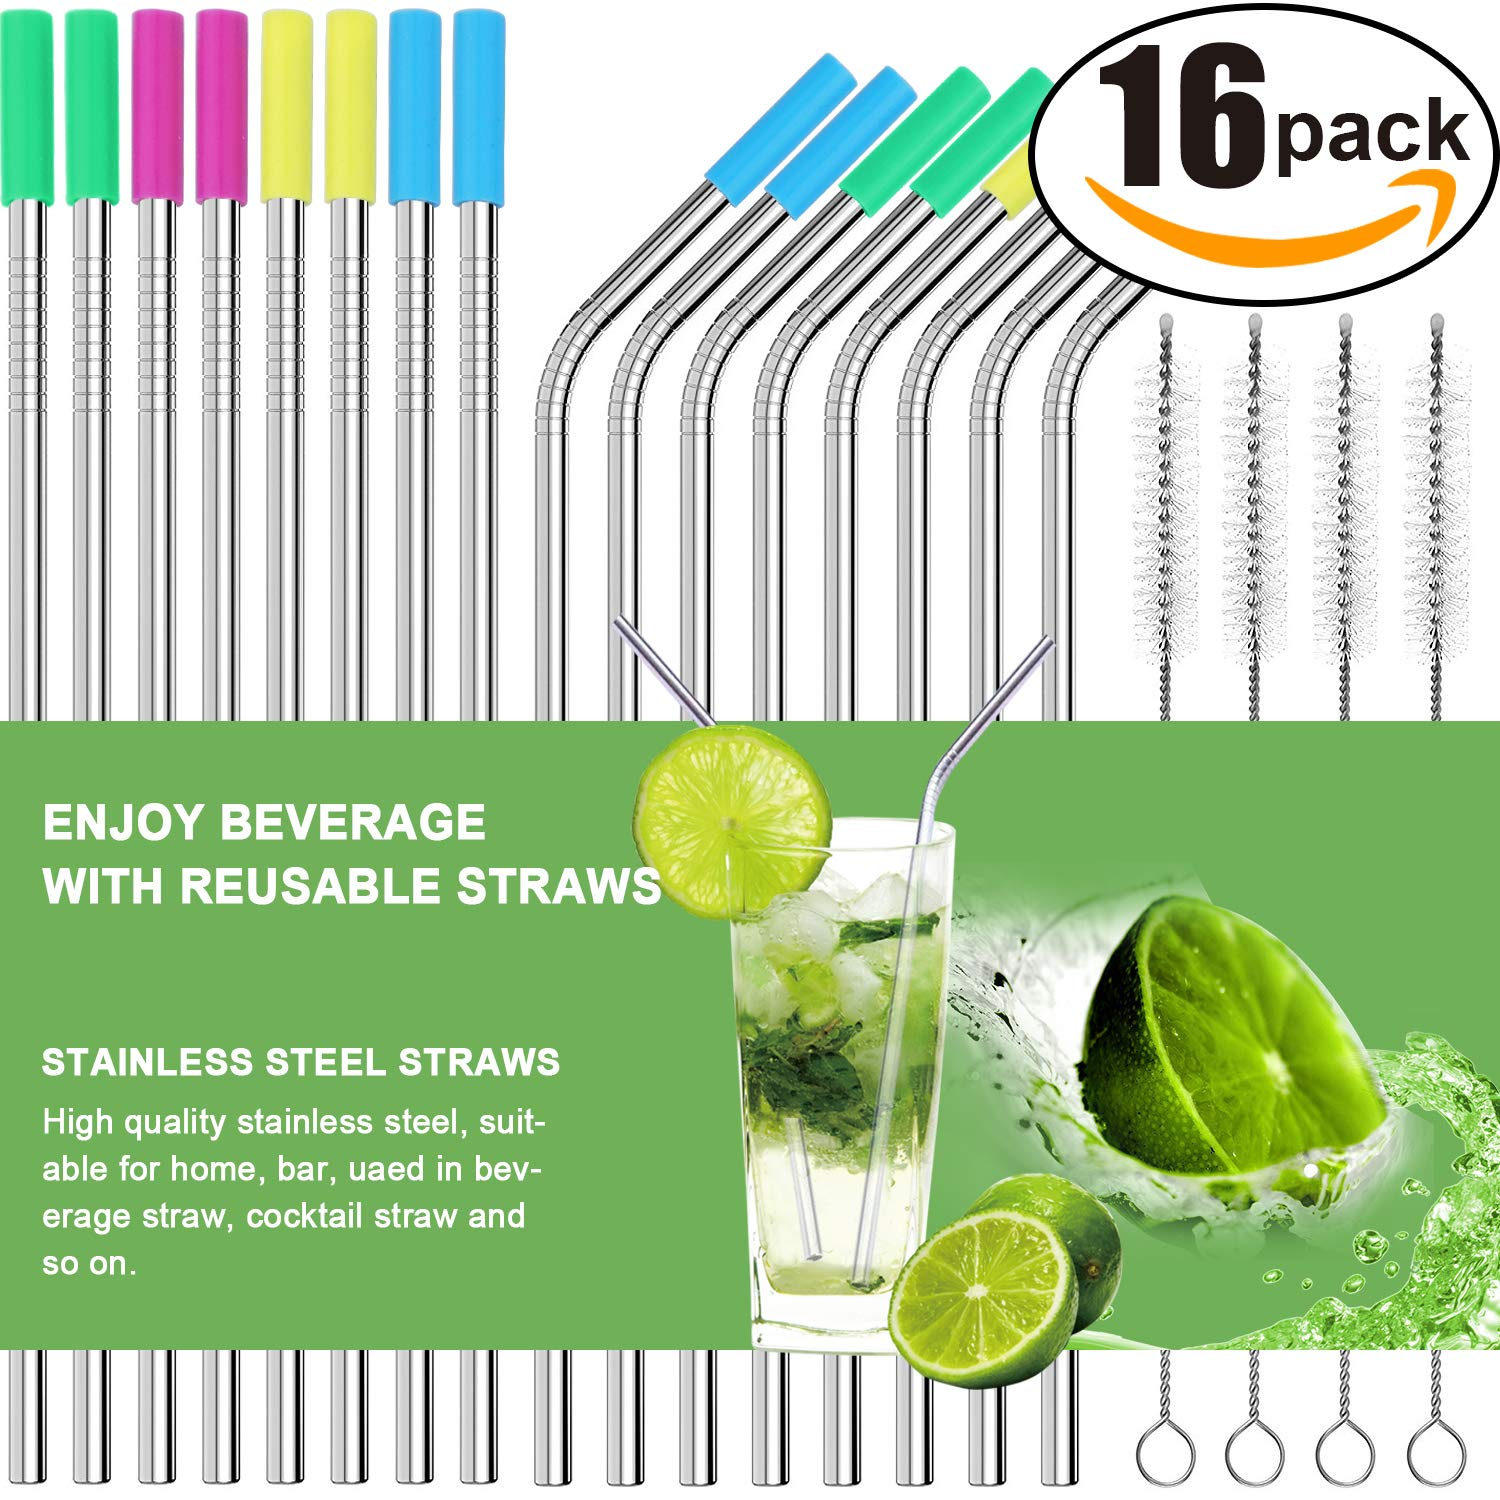 Set of 16 Stainless Steel Straws Ultra Long 10.5 Inch Drinking Metal Straws For Tumblers Rumblers Cold Beverage (8 Straight|8 Bent|4 Brushes) by AROIC